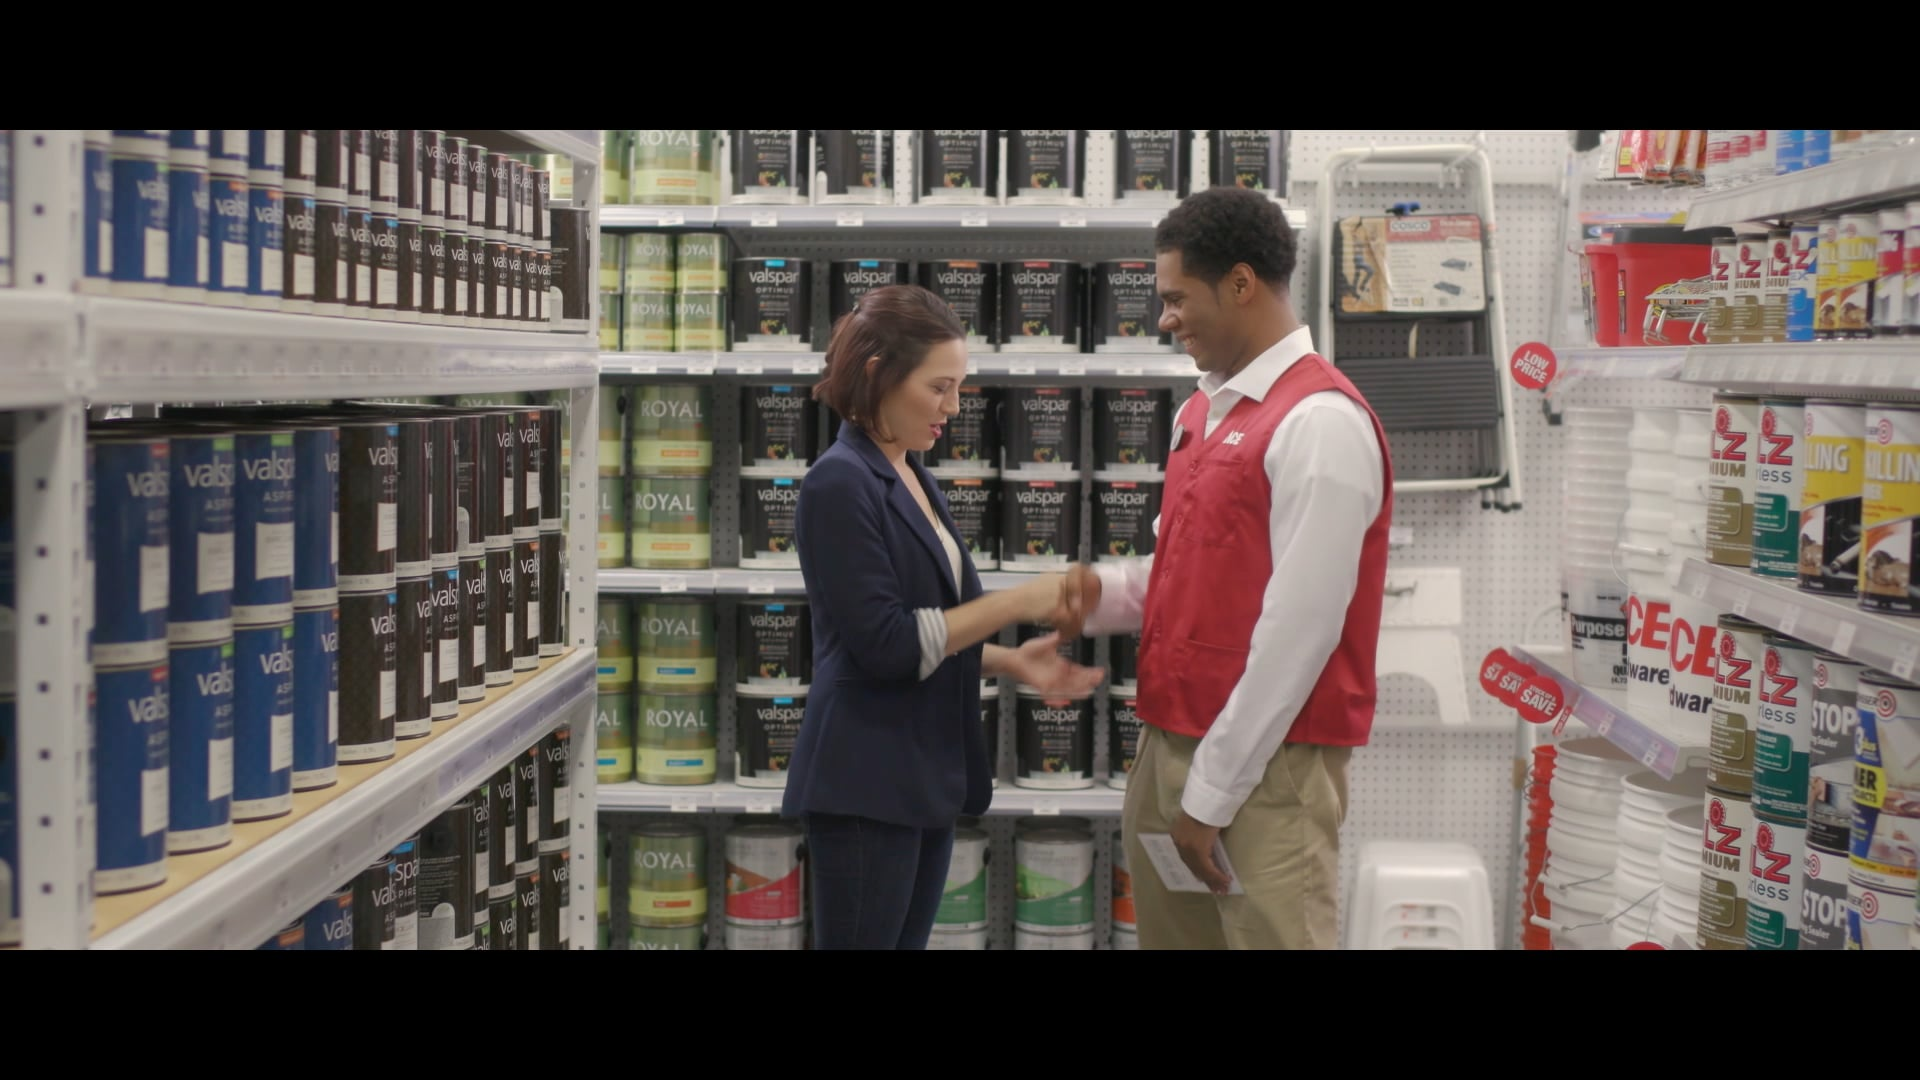 Ace Hardware - The Extra Mile